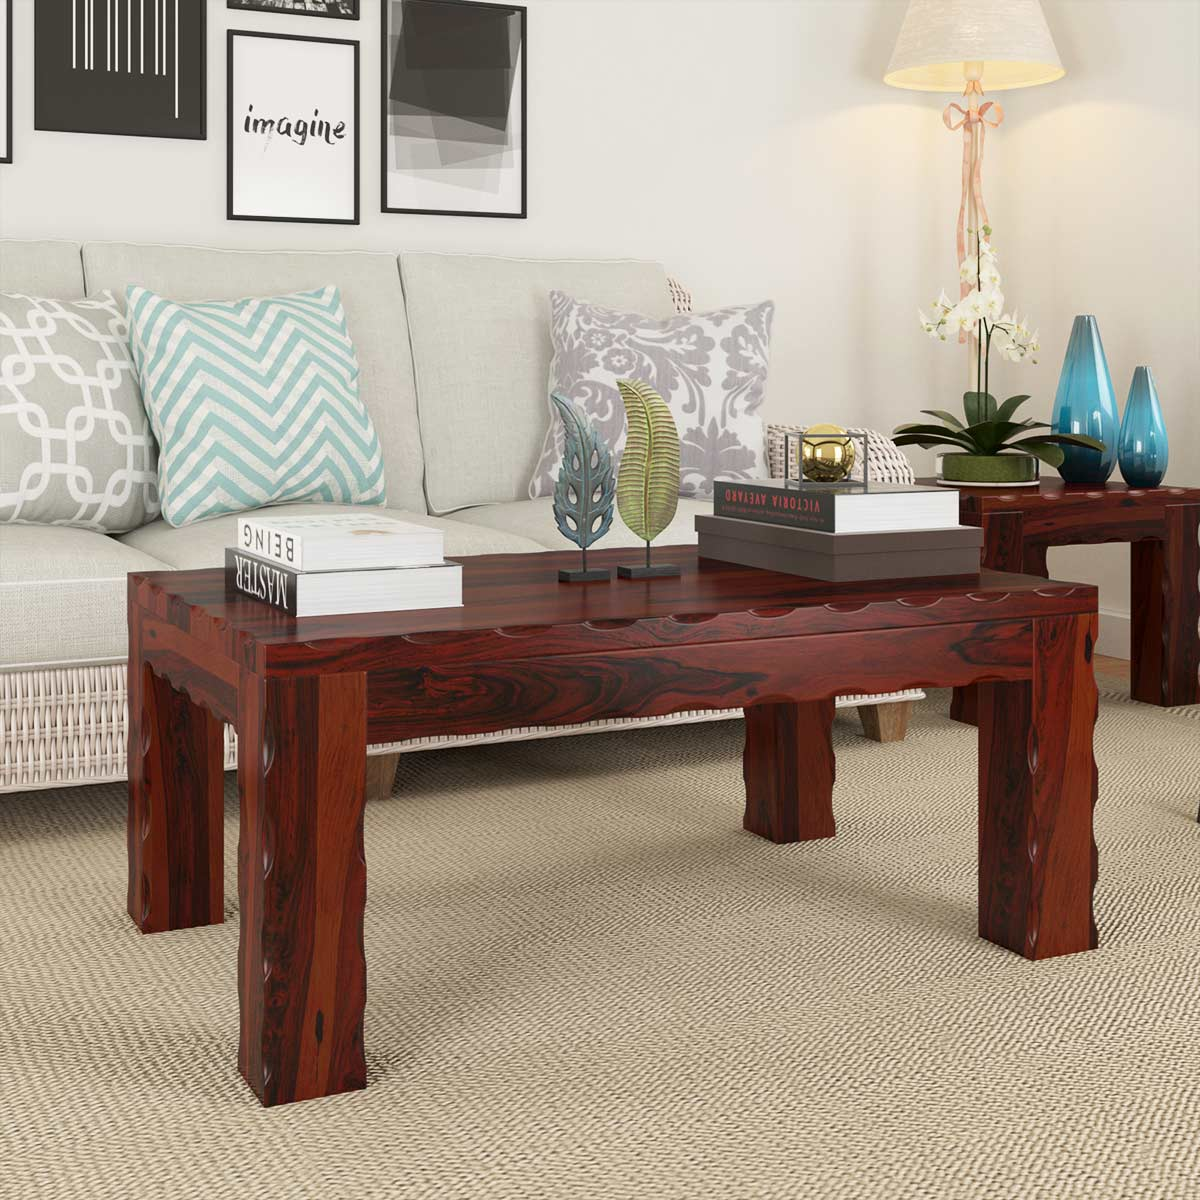 Unique rustic large cocktail wood coffee table Coffee tables rustic